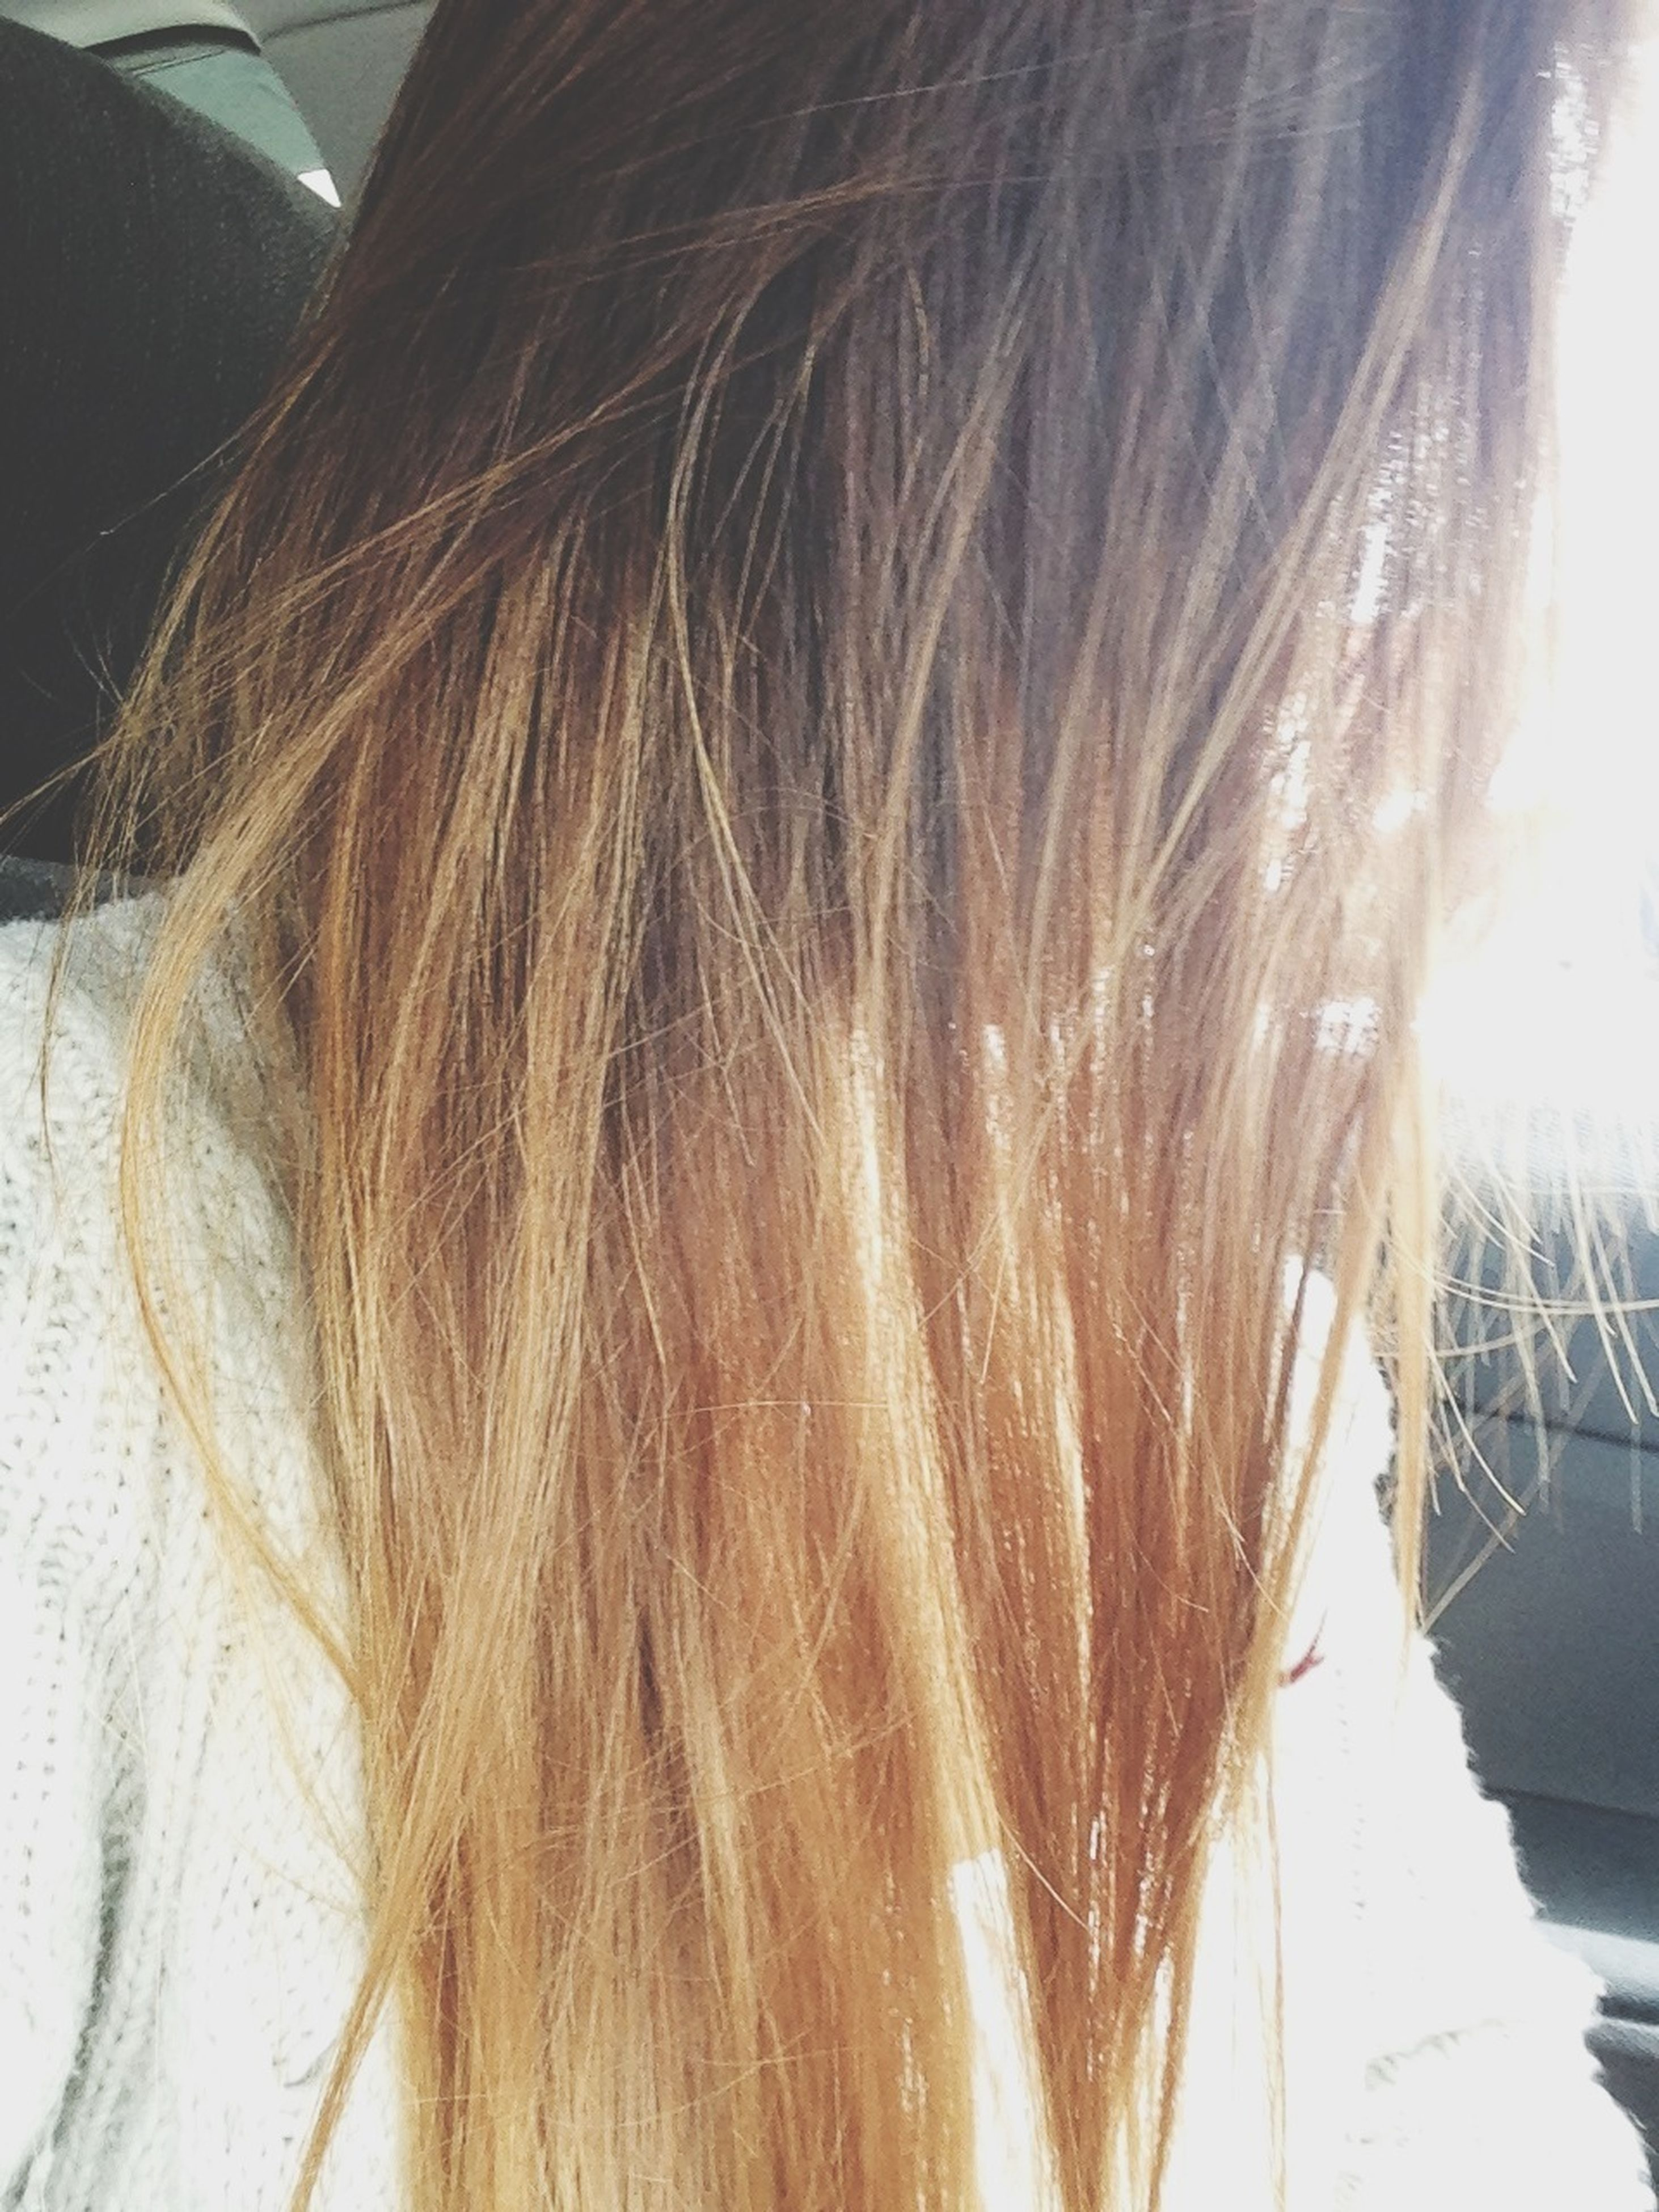 long hair, young women, lifestyles, headshot, young adult, leisure activity, human hair, person, blond hair, close-up, sunlight, brown hair, day, rear view, casual clothing, indoors